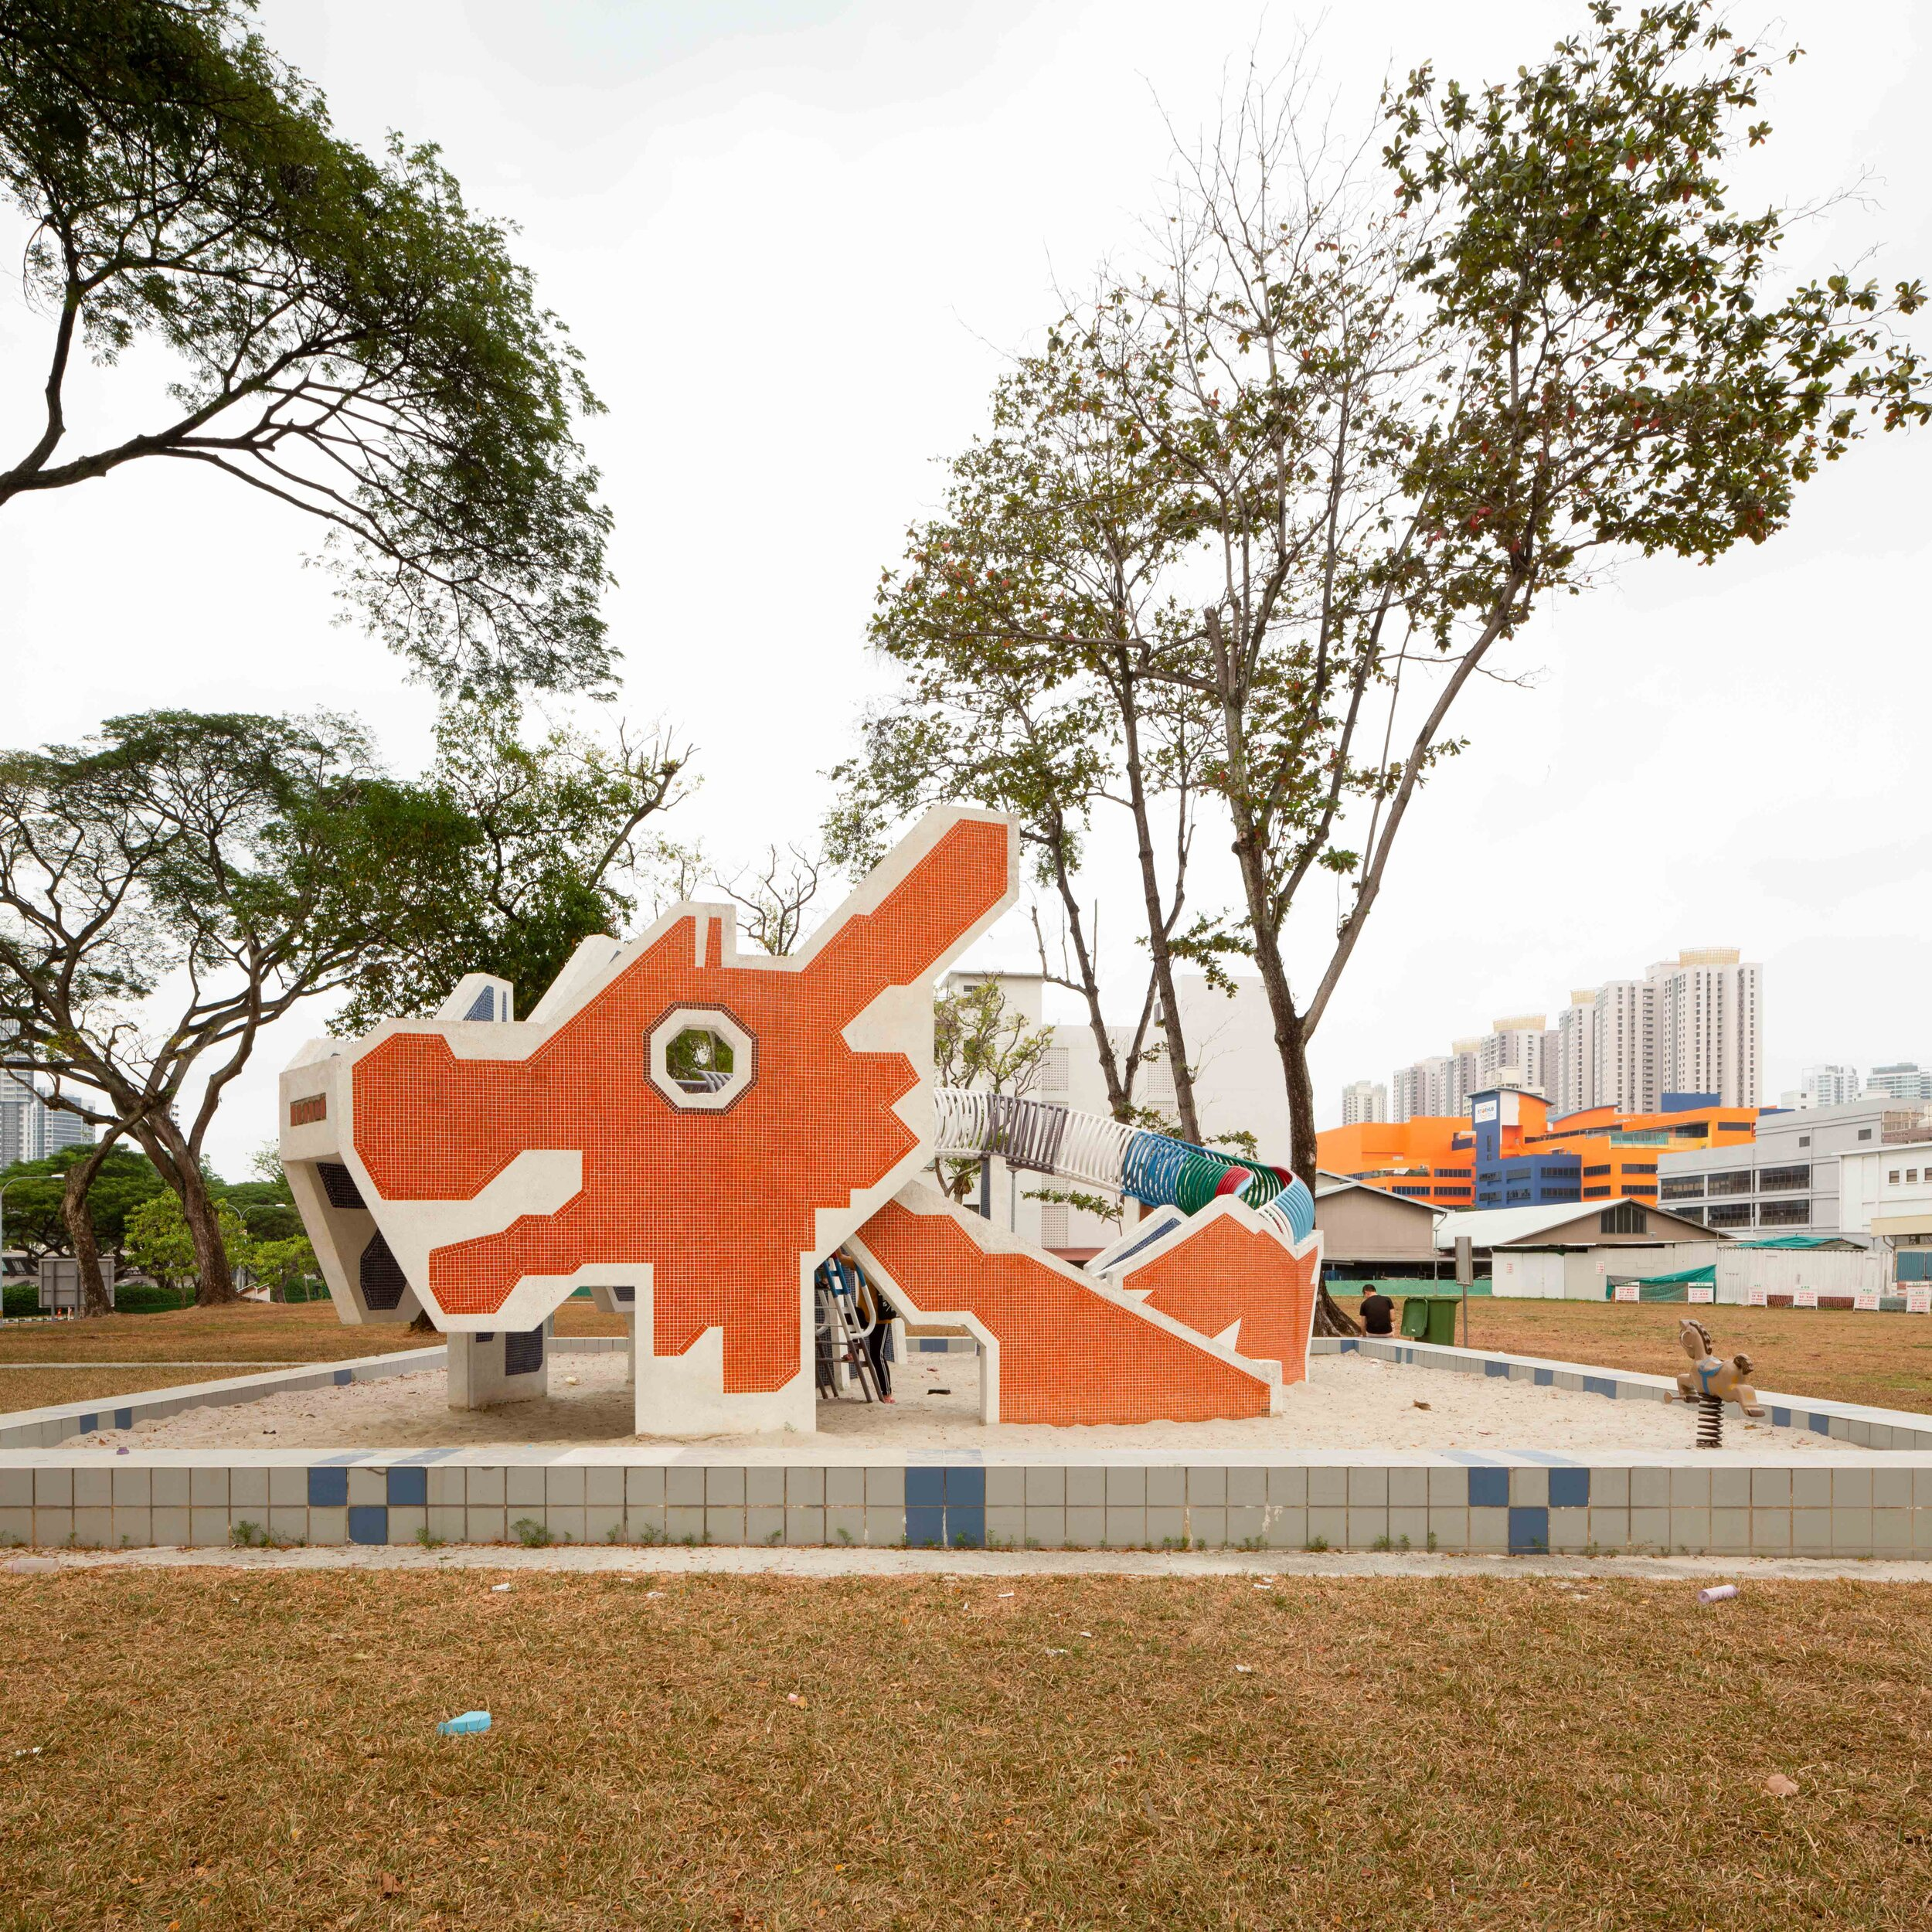 Dragon Playground Toa Payoh 190920 143, image by Andrew Campbell Nelson.jpg